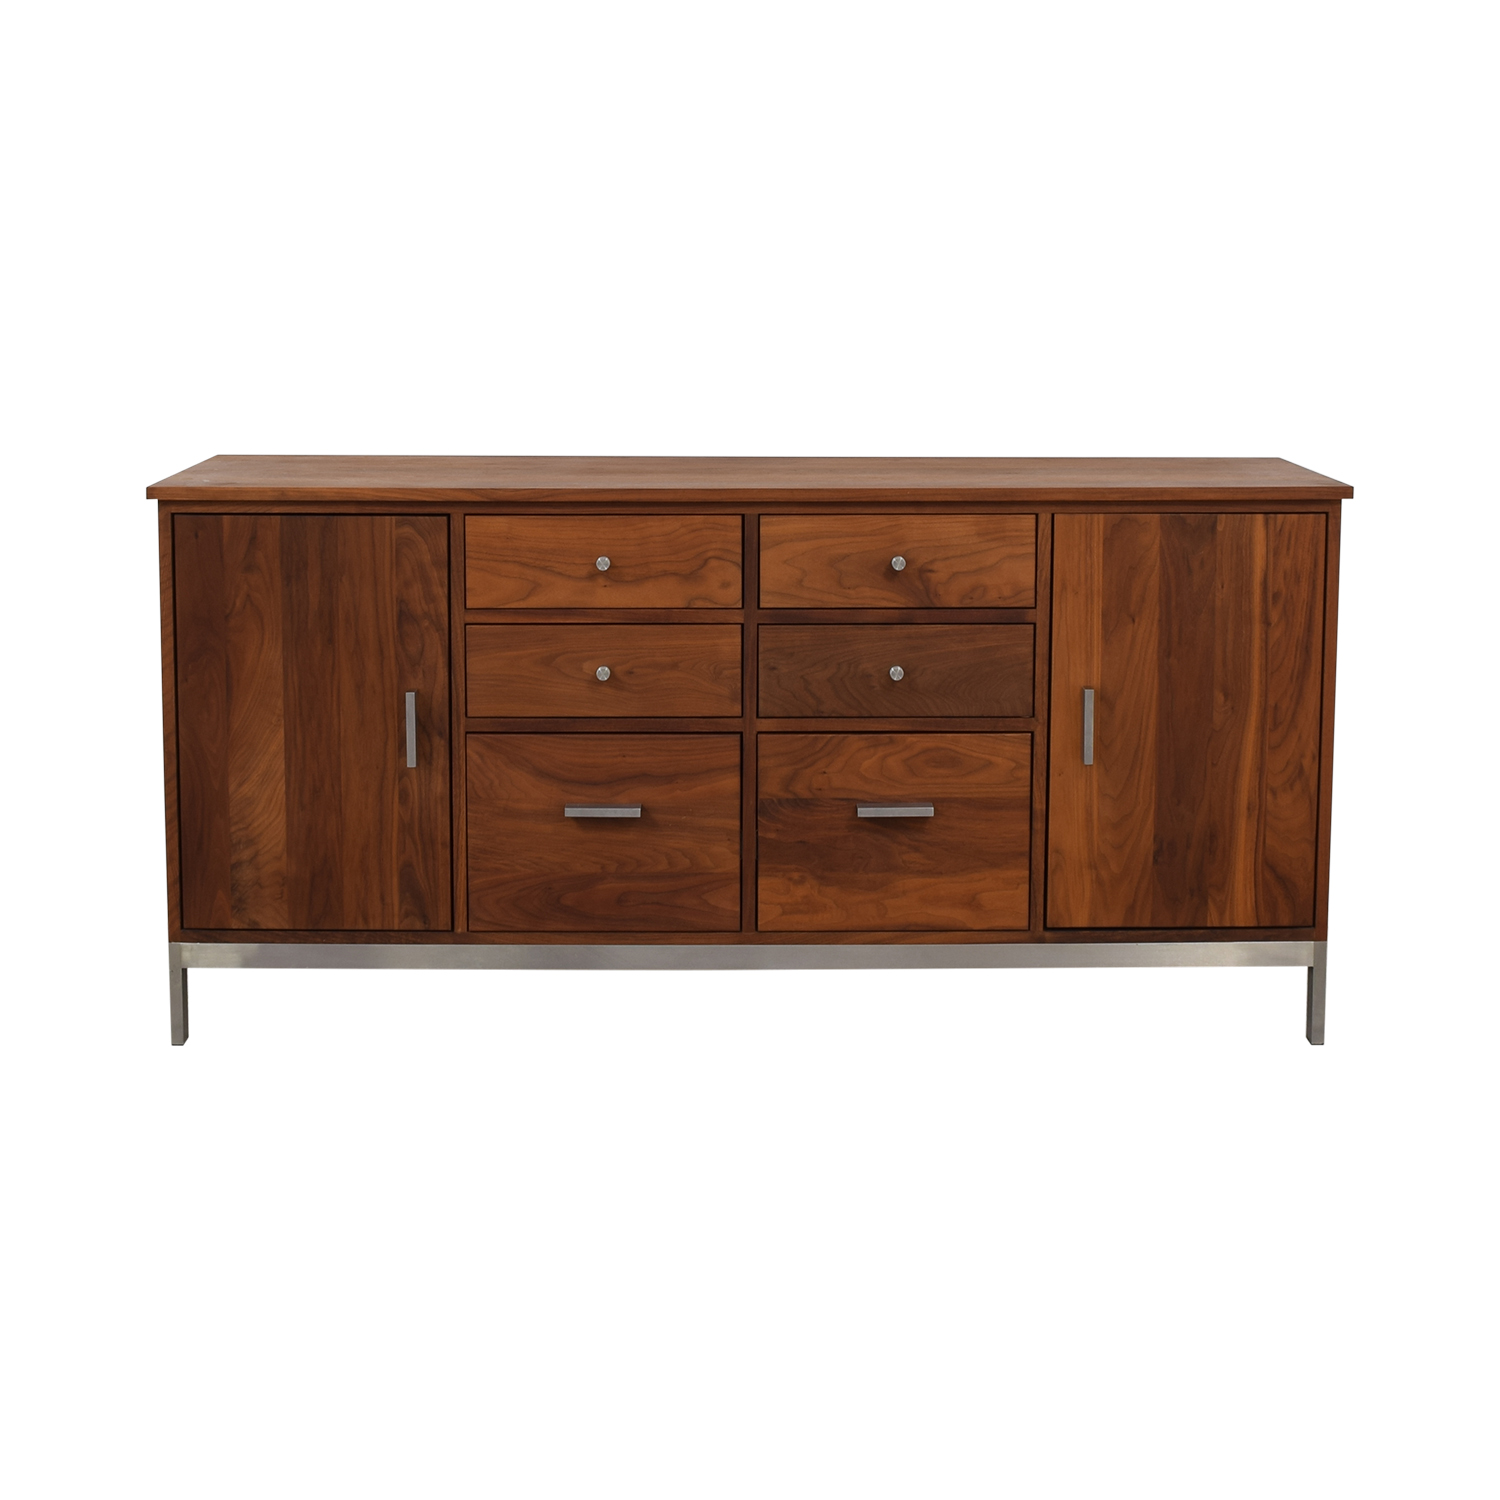 Room & Board Room & Board Walnut Linear Classic Custom Cabinet dimensions